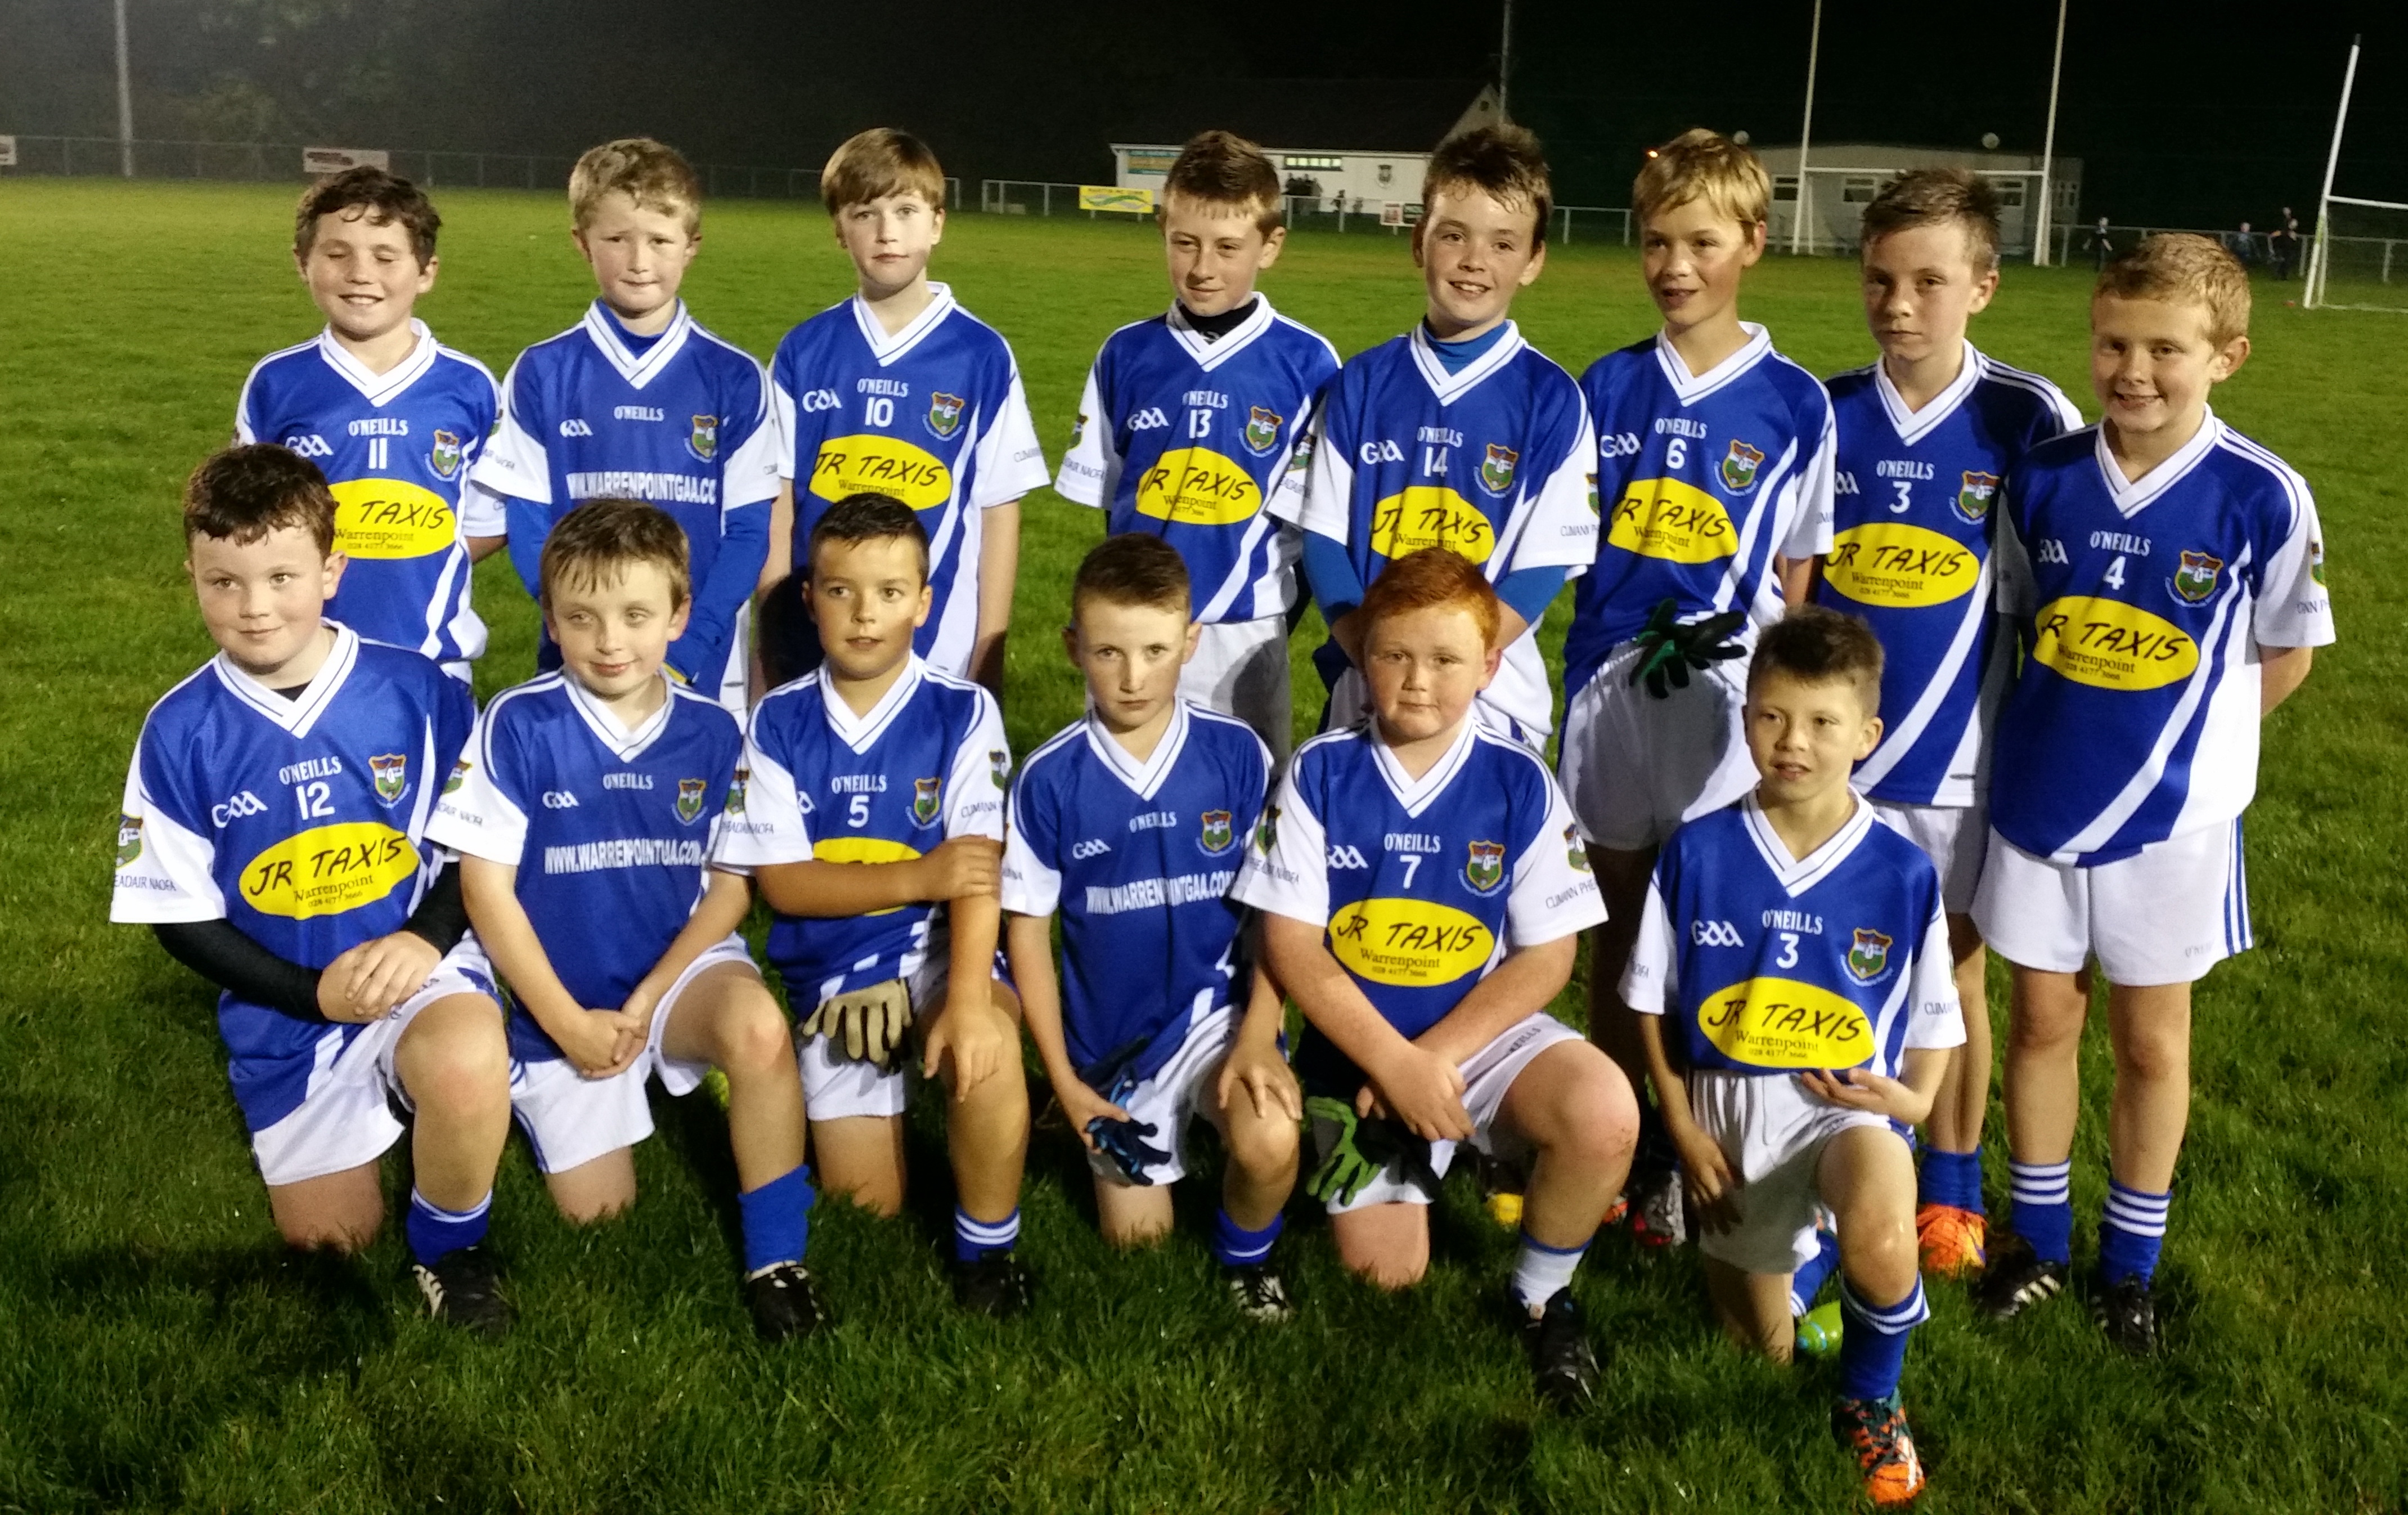 Great win for U11 footballers